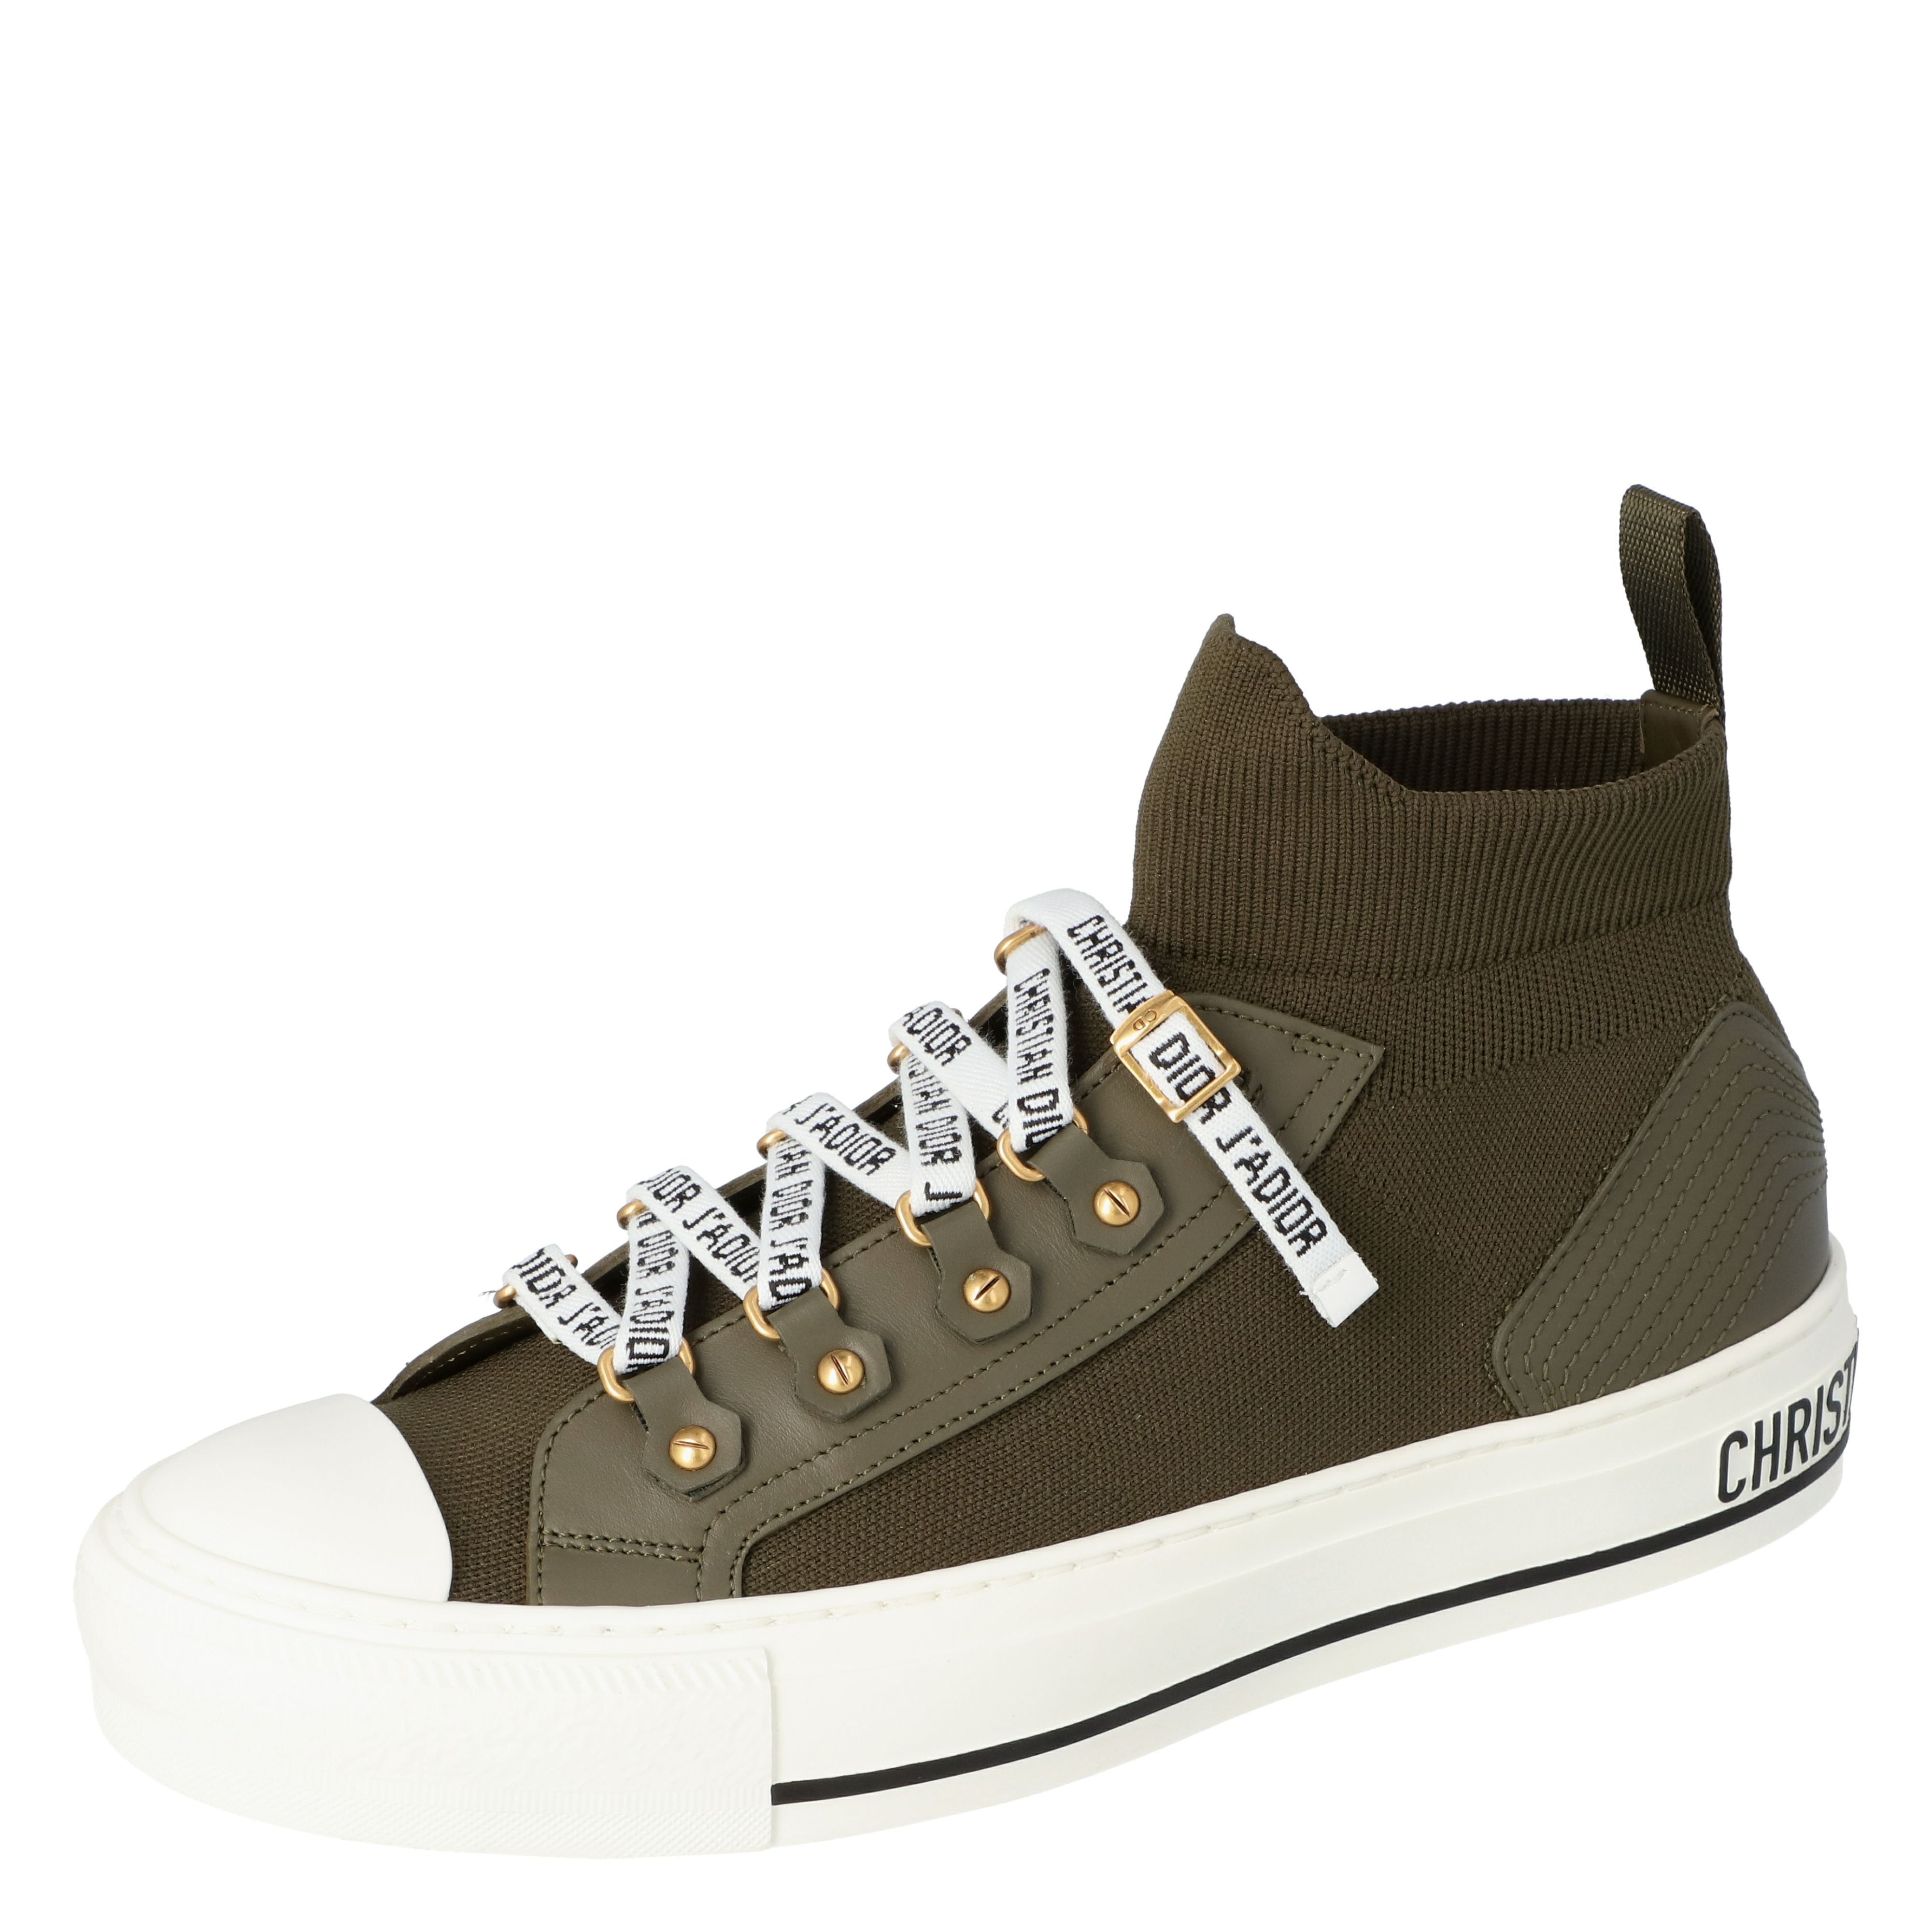 Dior Military Green Technical Knit and Leather Walk'n'Dior High-Top Sneakers Size 39